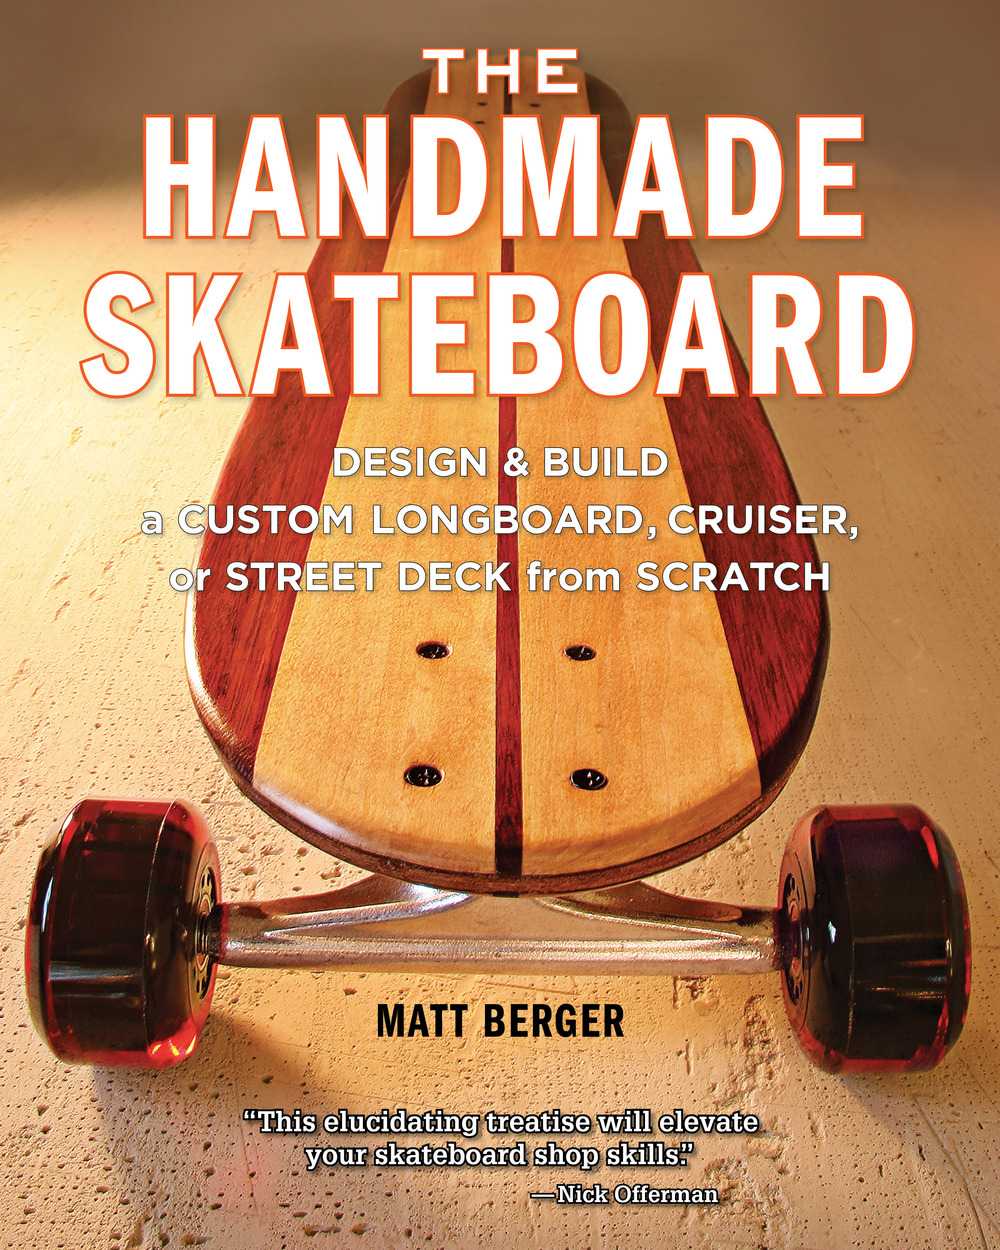 The Handmade Skateboard.jpg